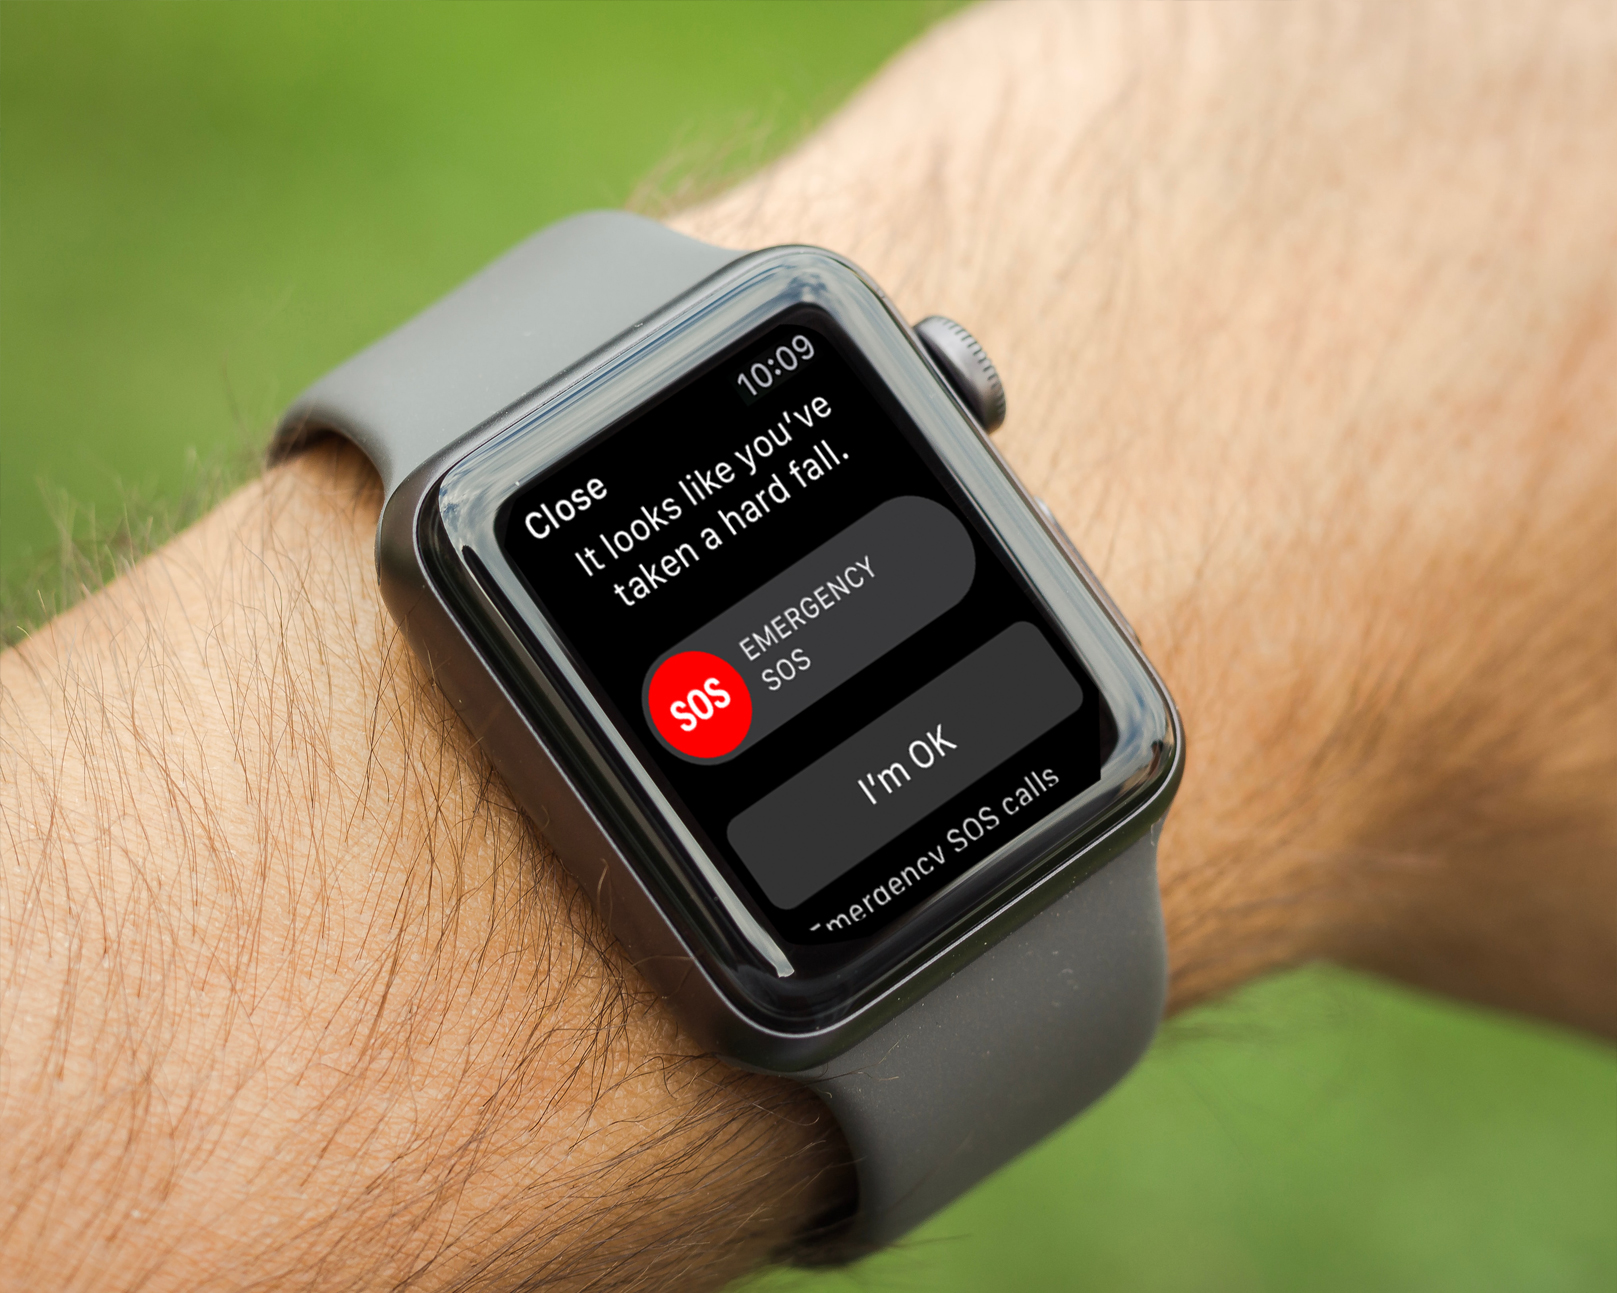 IOT and How the Apple watch saves lives